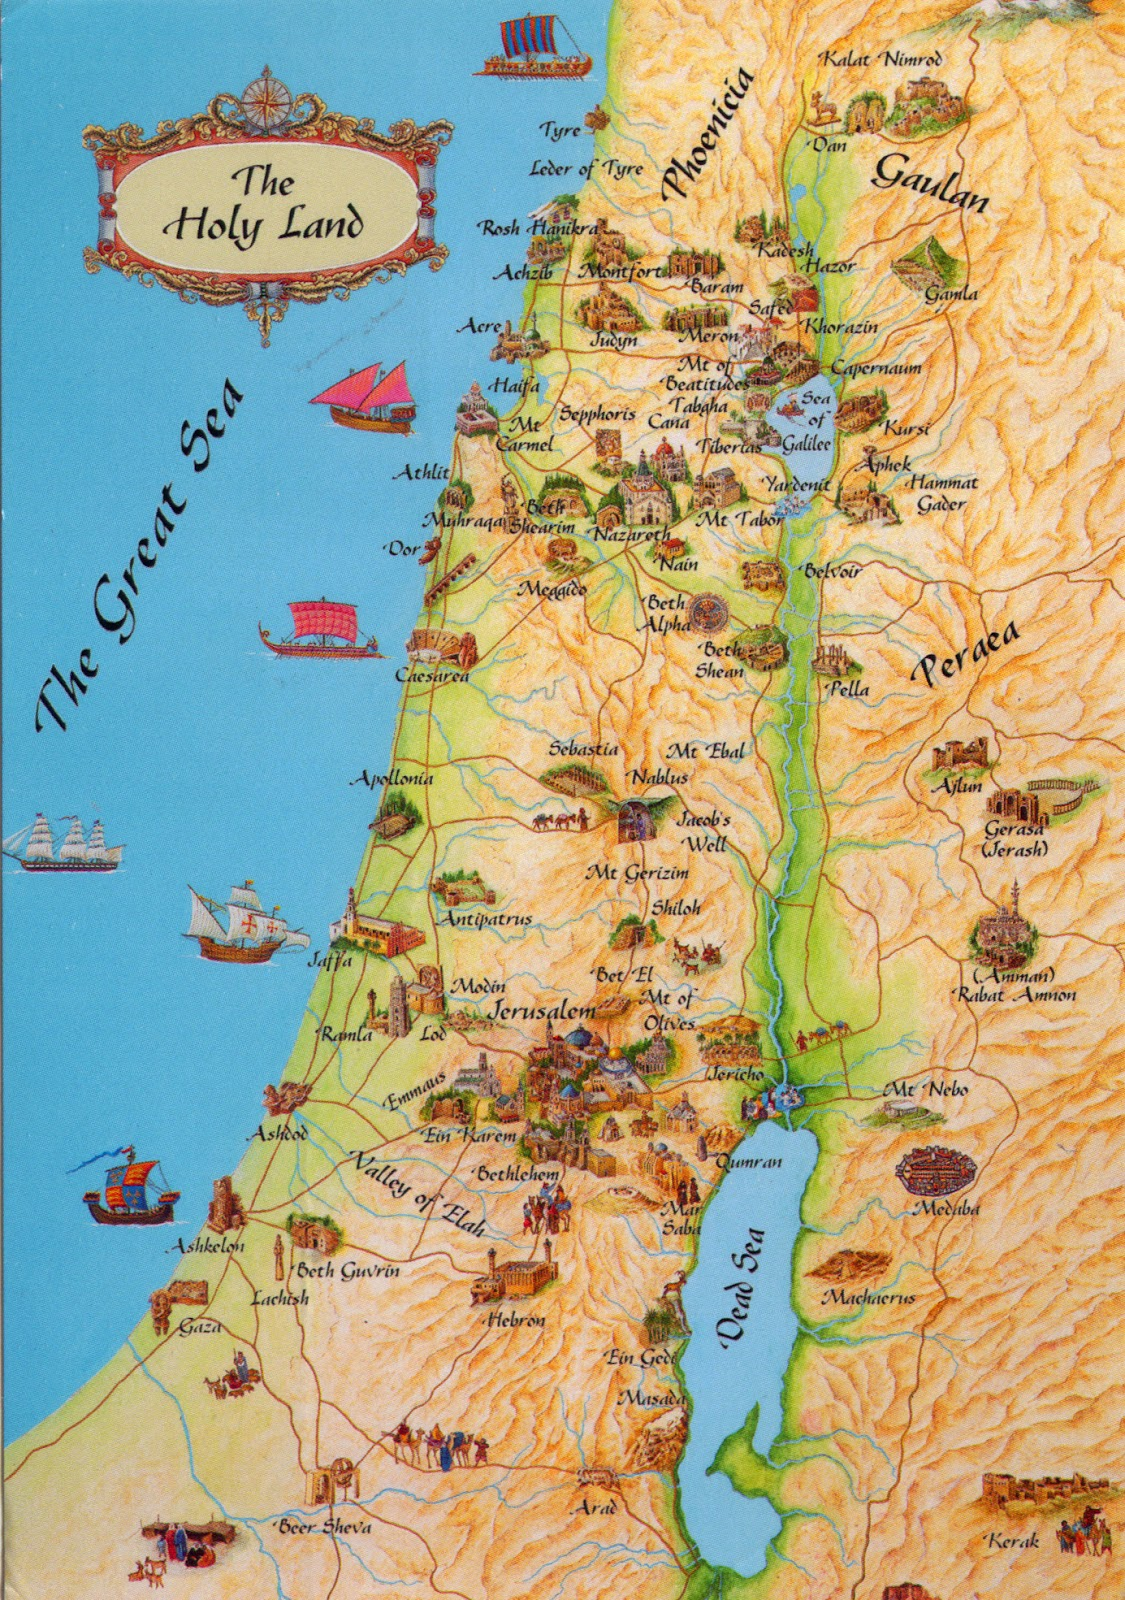 World come to my home 0315 israel the map of the holy land 0315 israel the map of the holy land gumiabroncs Gallery